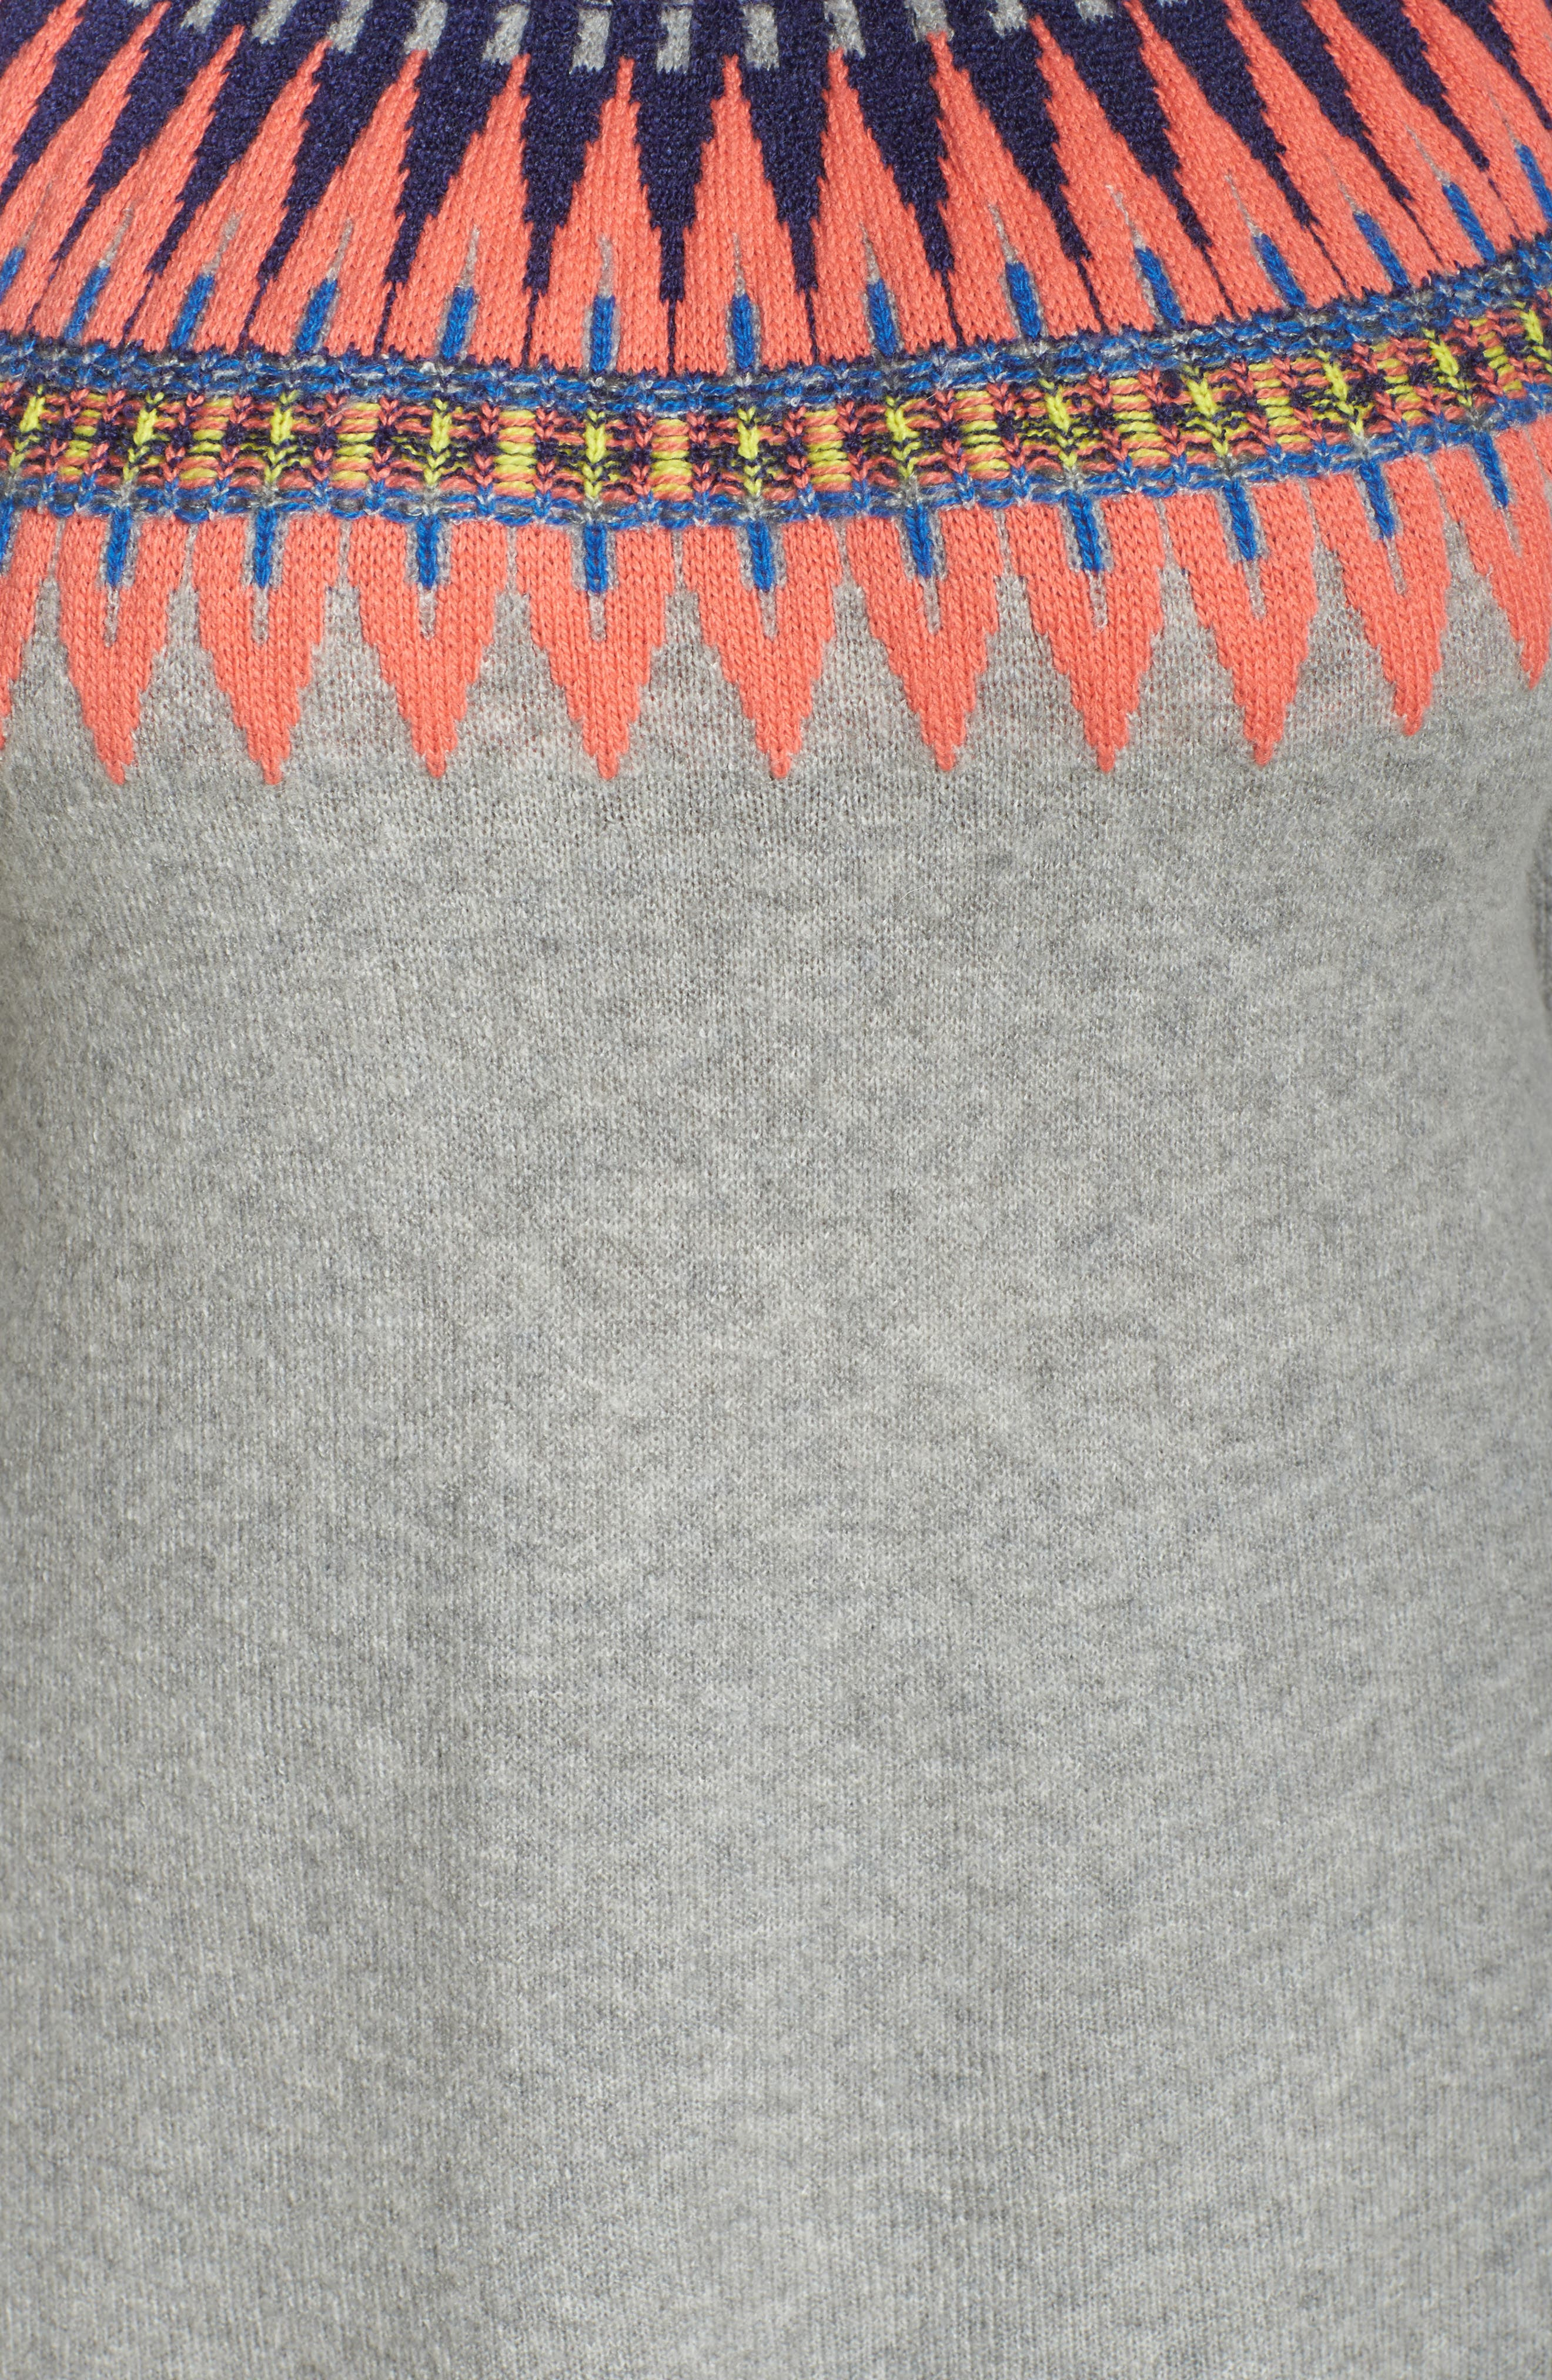 Tie Back Patterned Sweater,                             Alternate thumbnail 6, color,                             Grey- Pink Pattern